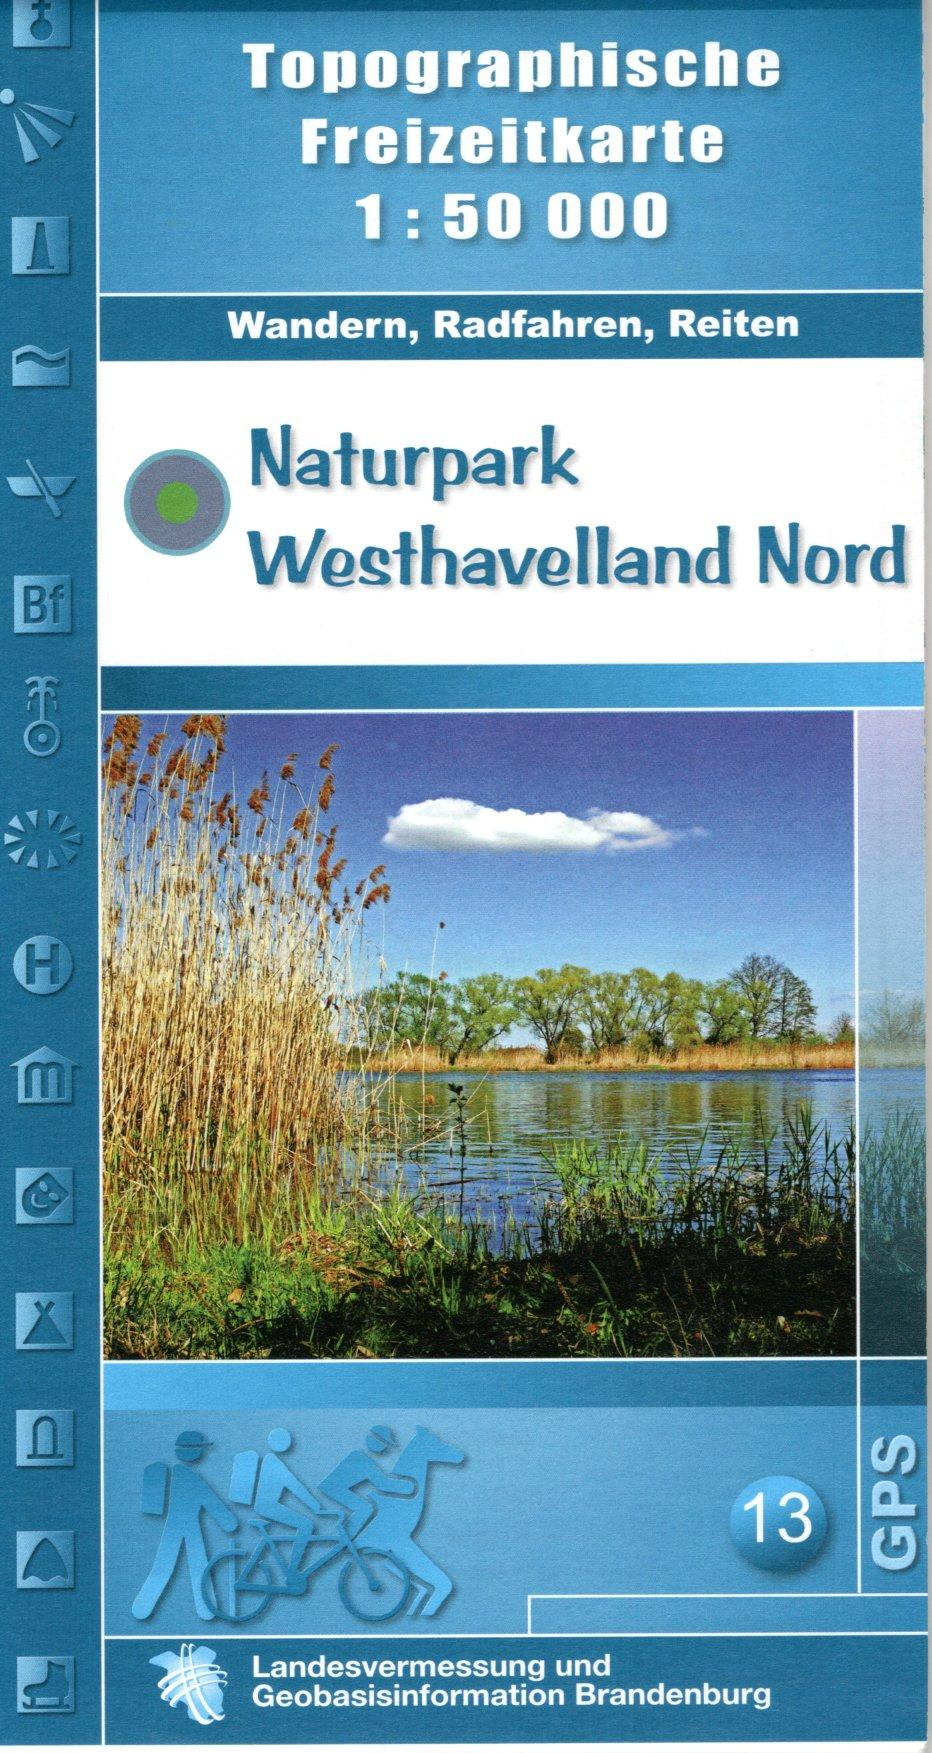 NP Westhavelland Nord